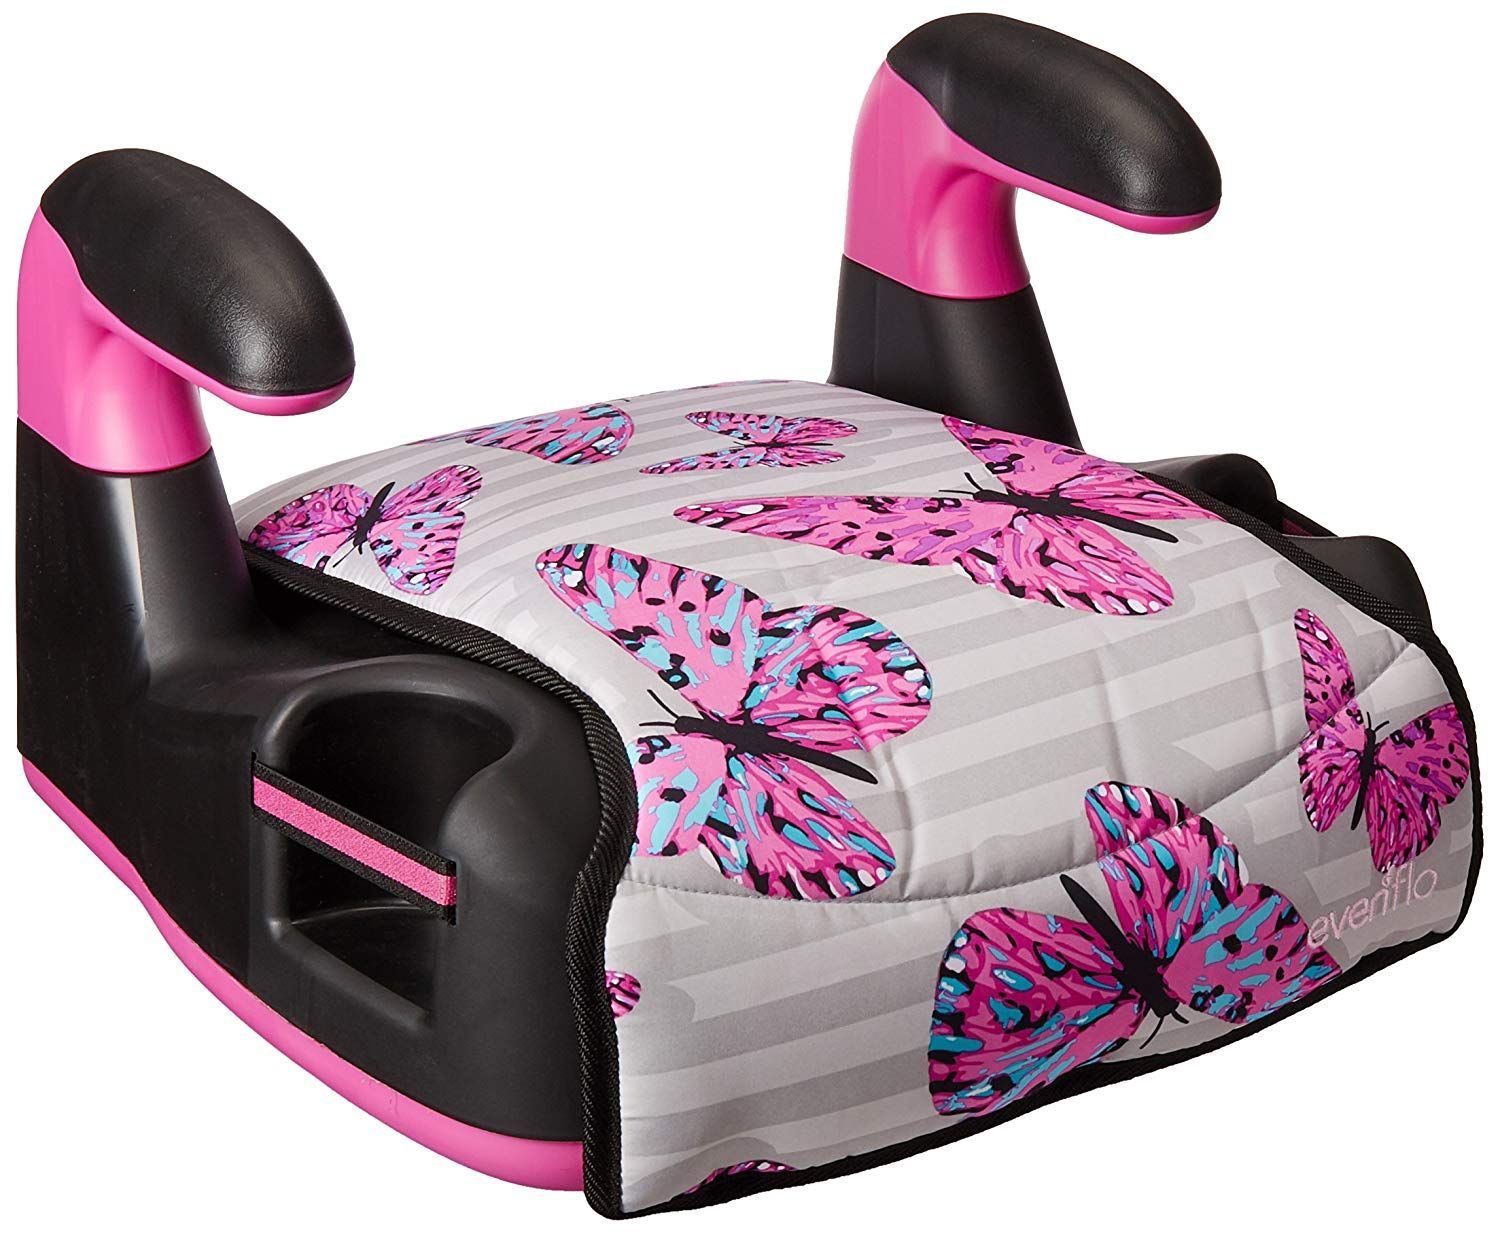 Evenflo AMP Select Car Booster Seat, Butterfly Baby car